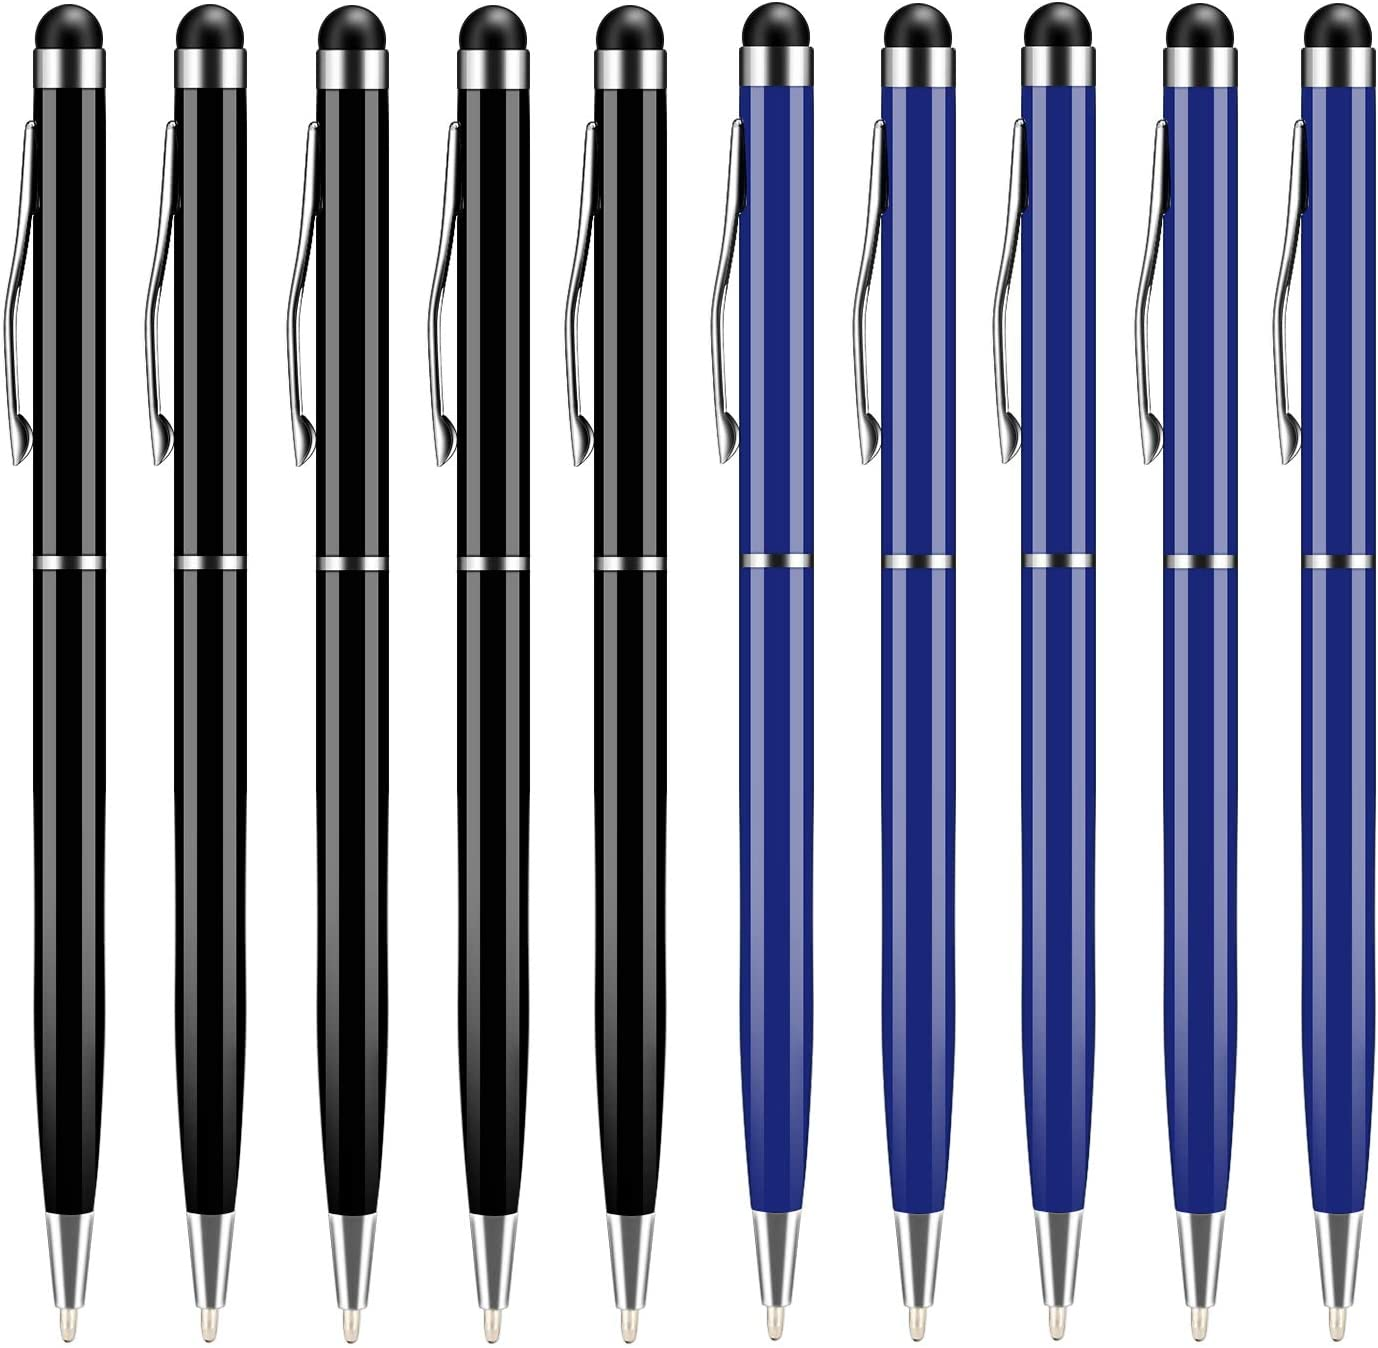 UROPHYLLA Universal 2 in 1 Capacitive Stylus Ballpoint Pens for Touch Screens Fine Point - Bundle(10 Balck 5 Silver 5 Blue)